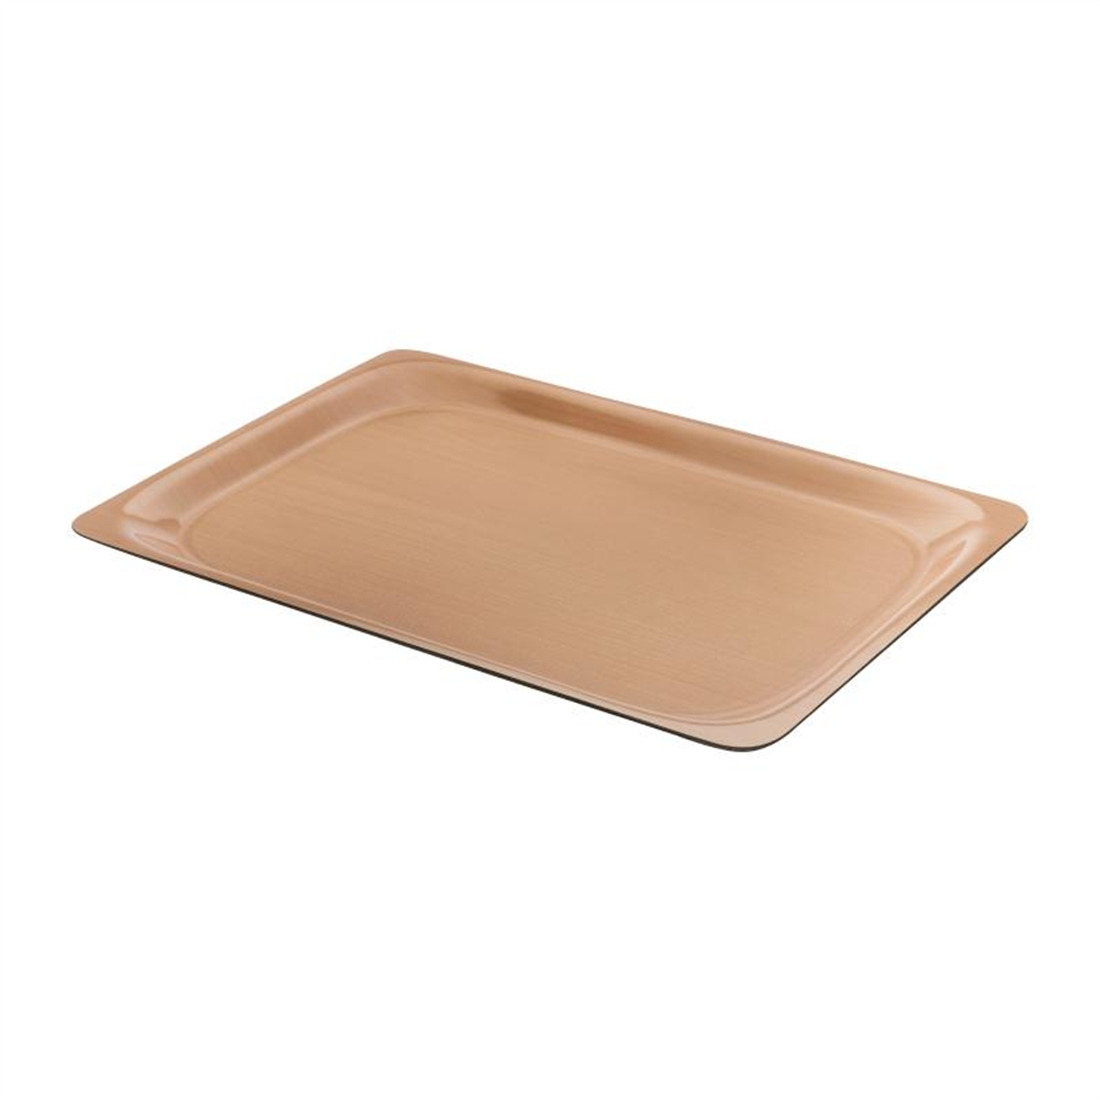 Cambro Mykonos Food Tray Birch 380mm